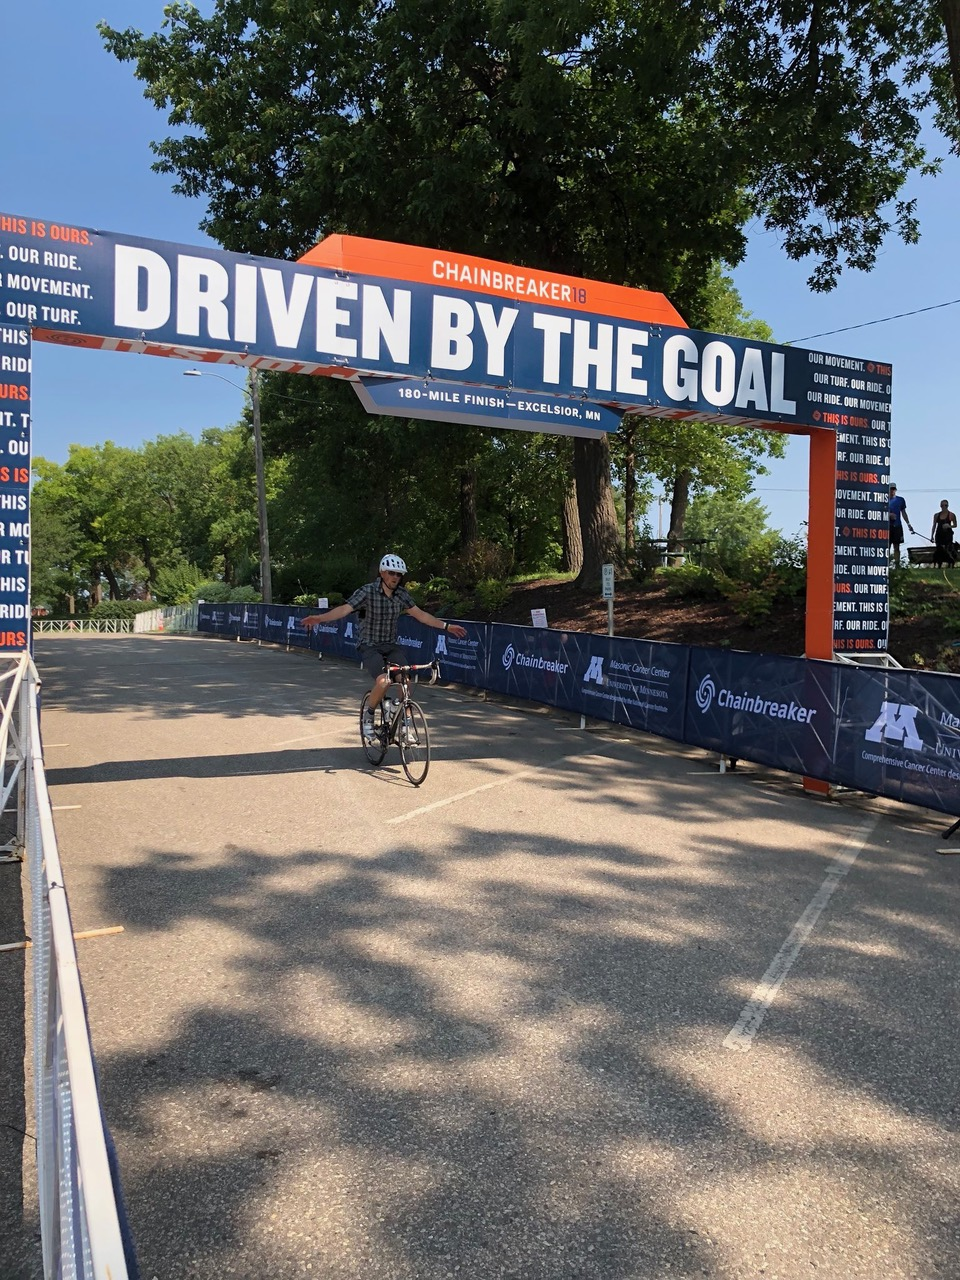 Professor in the College of Pharmacy, David Stenehjem, at the finish line for the Chainbreaker Ride on Aug. 12, 2018. Stenehjem rode all 180 miles on his bike for the Chainbreaker Ride for one of his many cancer fundraising events. Photo courtesy of David Stenehjem